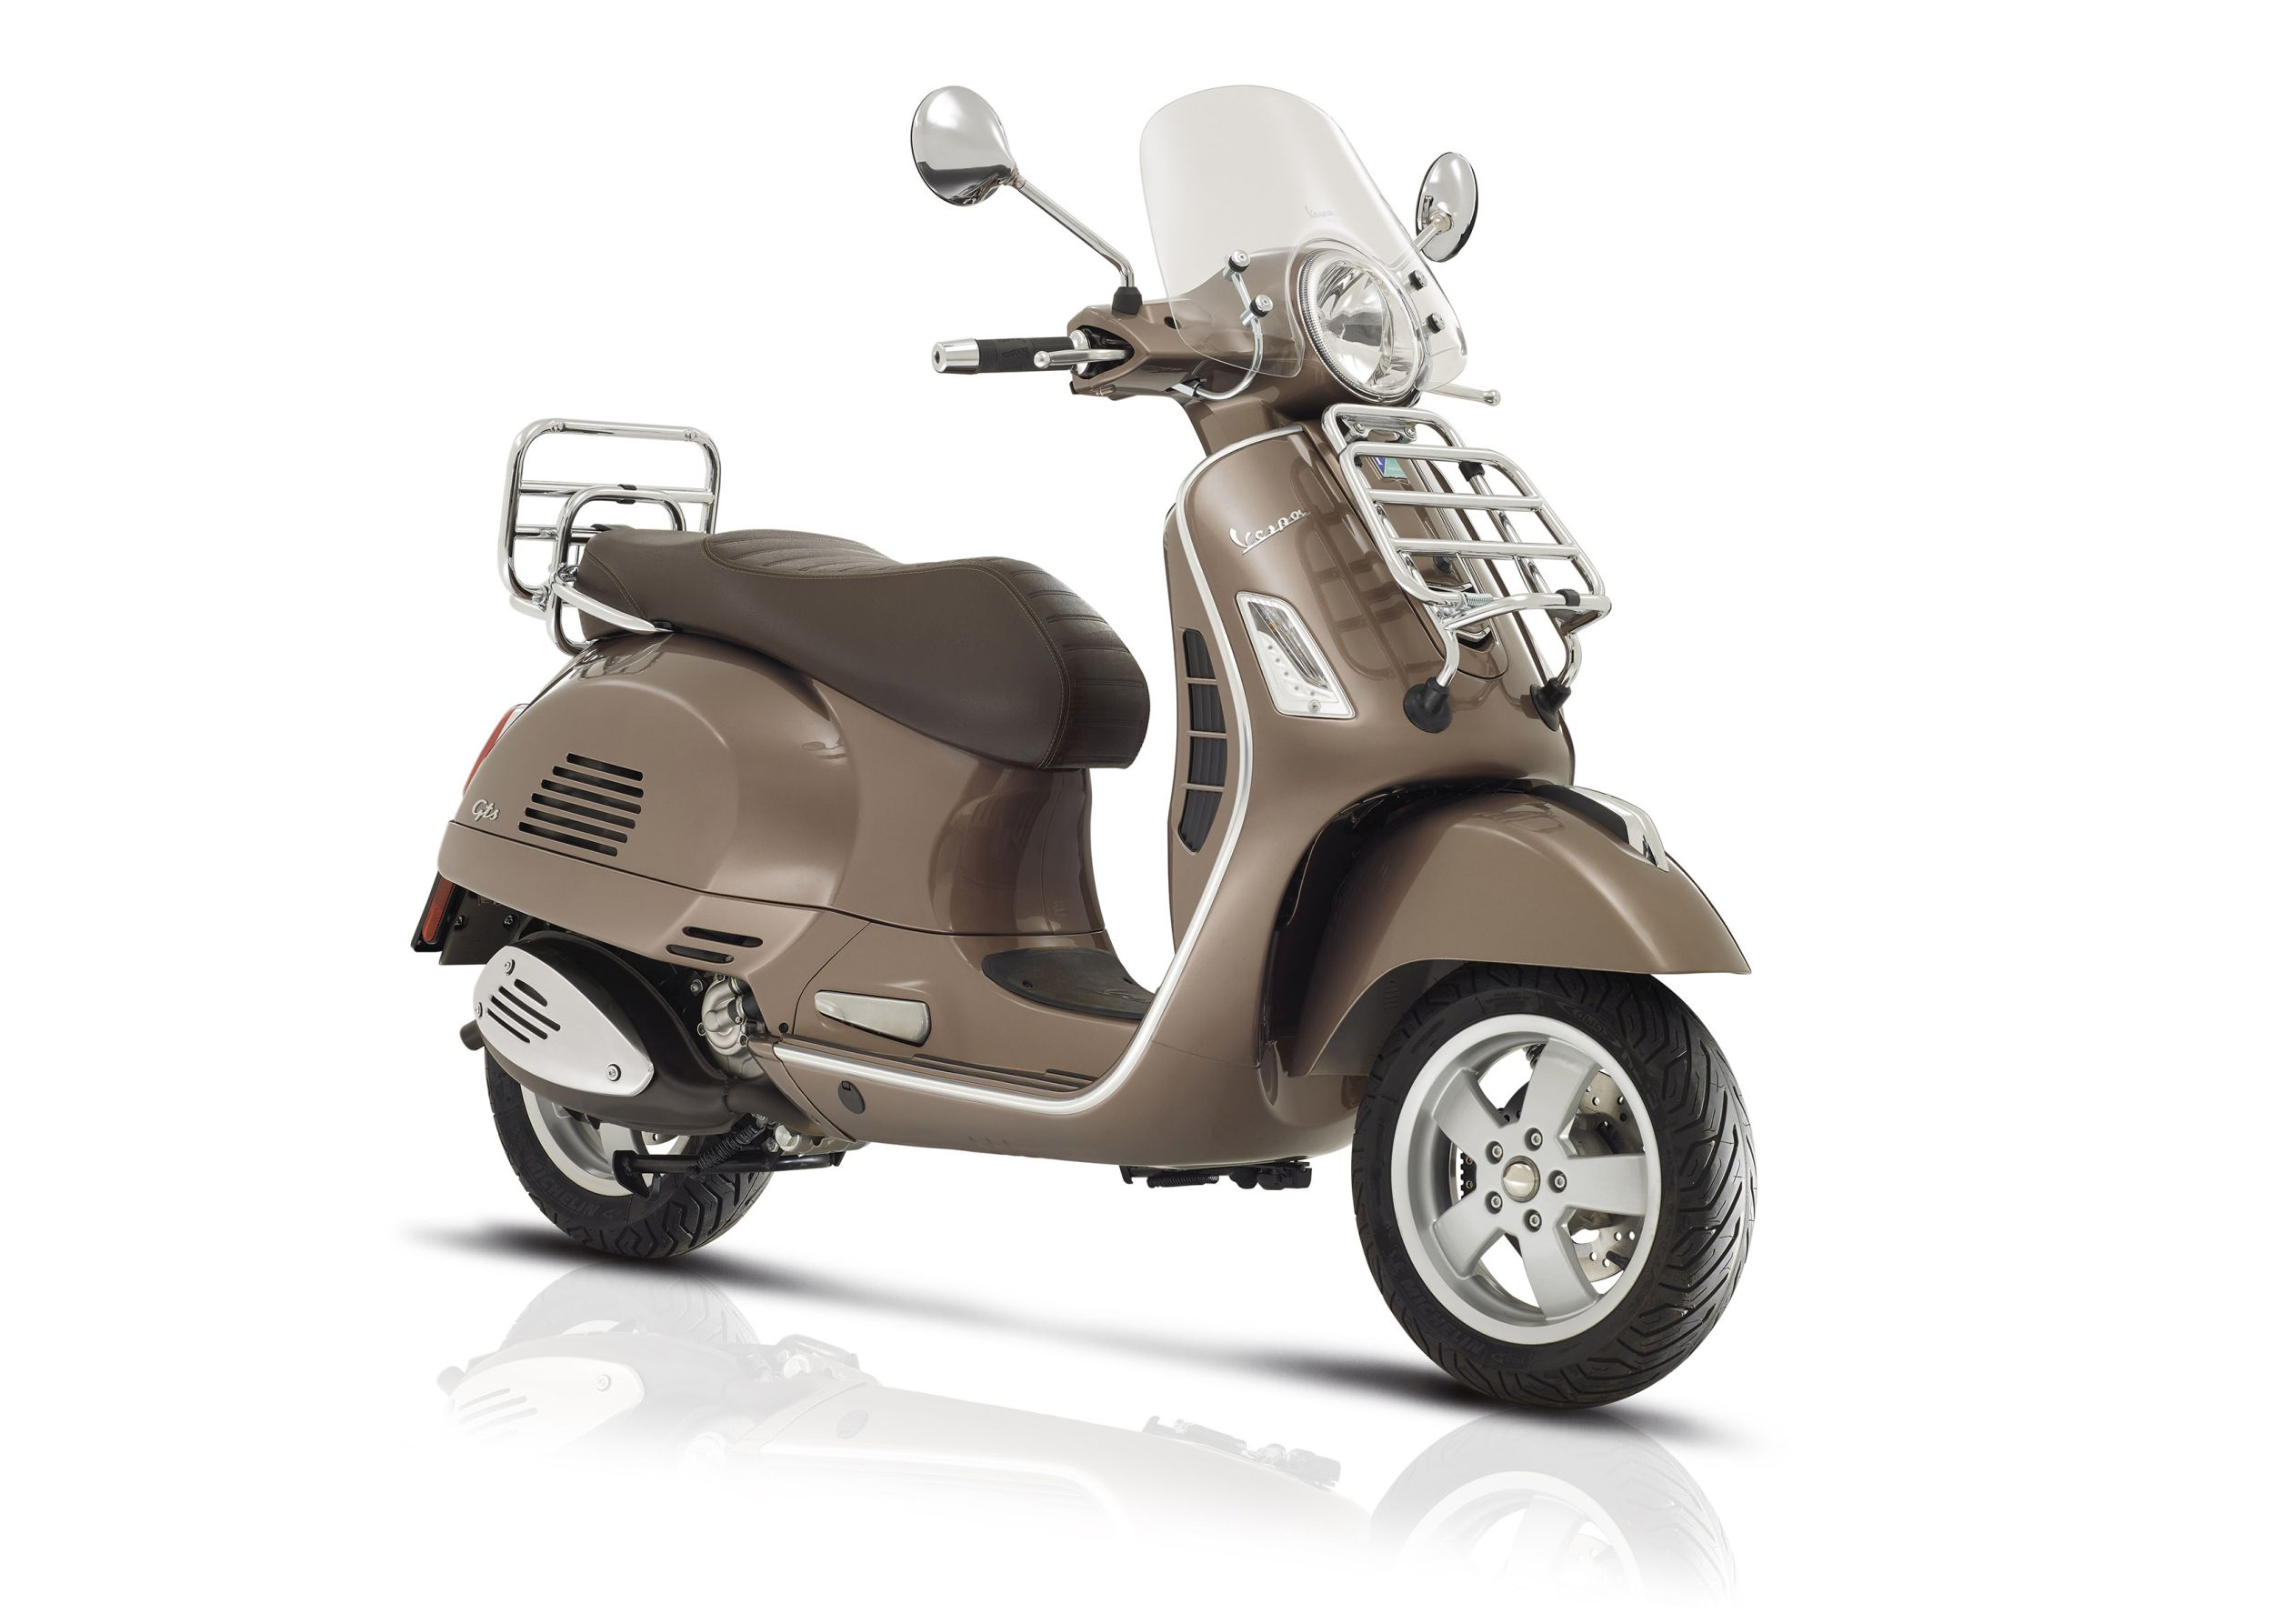 vespa gts 125 i e touring all technical data of the. Black Bedroom Furniture Sets. Home Design Ideas